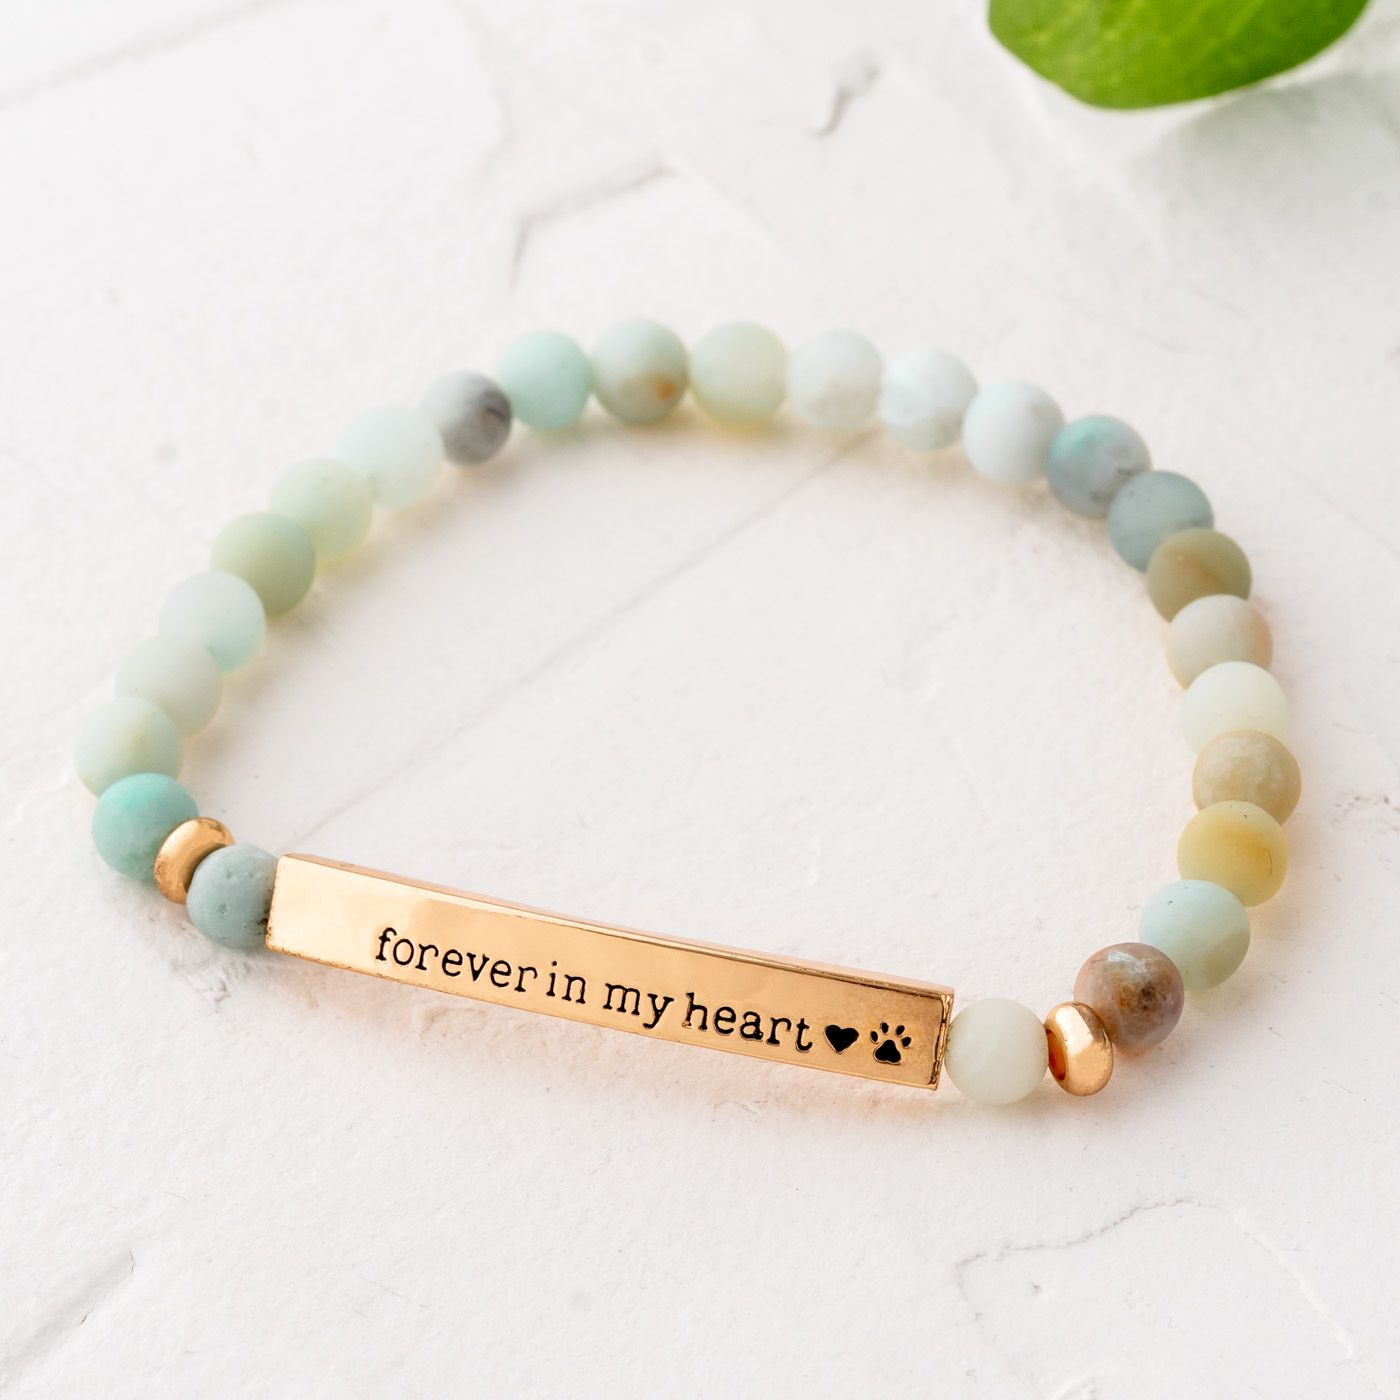 Paws & Reflect 'Forever In My Heart' Bracelet